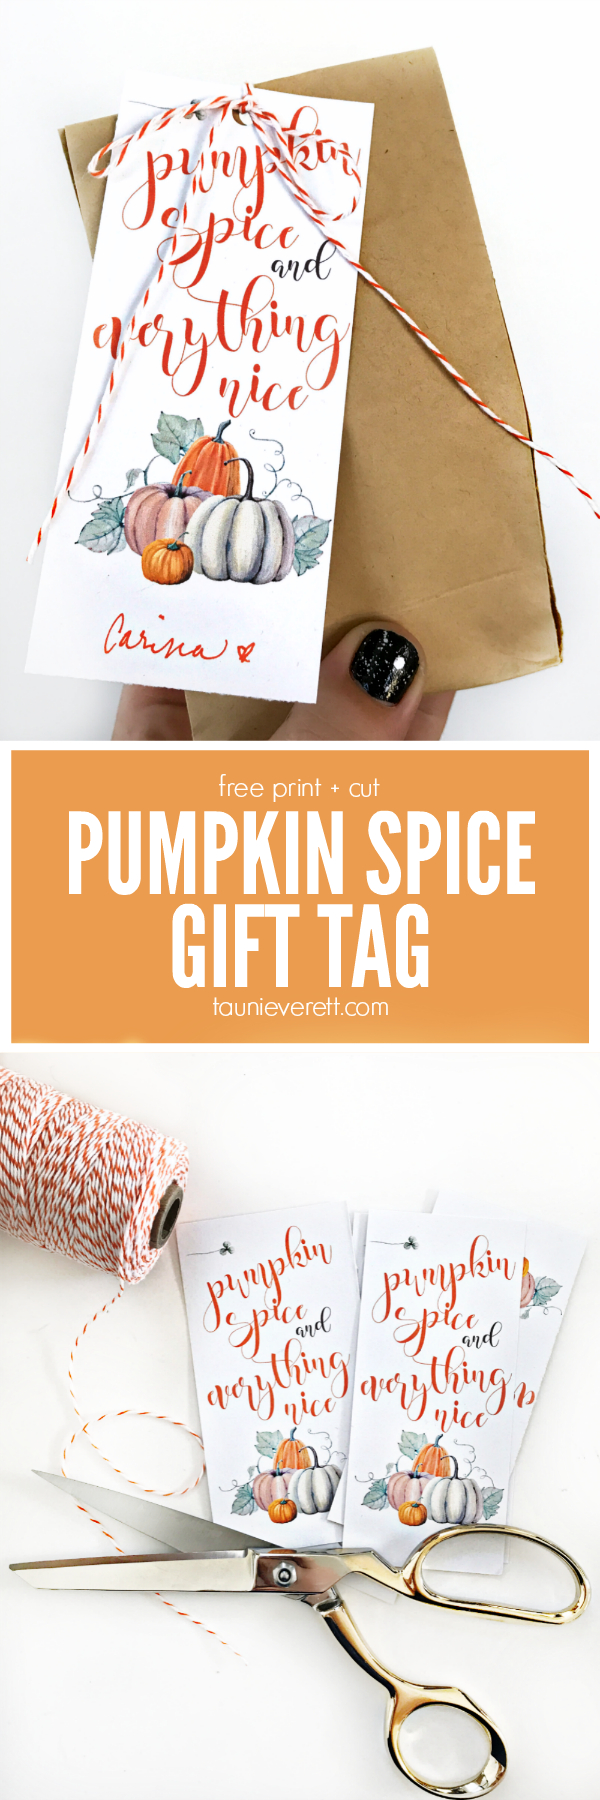 Free Print And Cut Pumpkin Spice Gift Tag #pumpkin #pumpkinspice - Free Printable Pumpkin Gift Tags